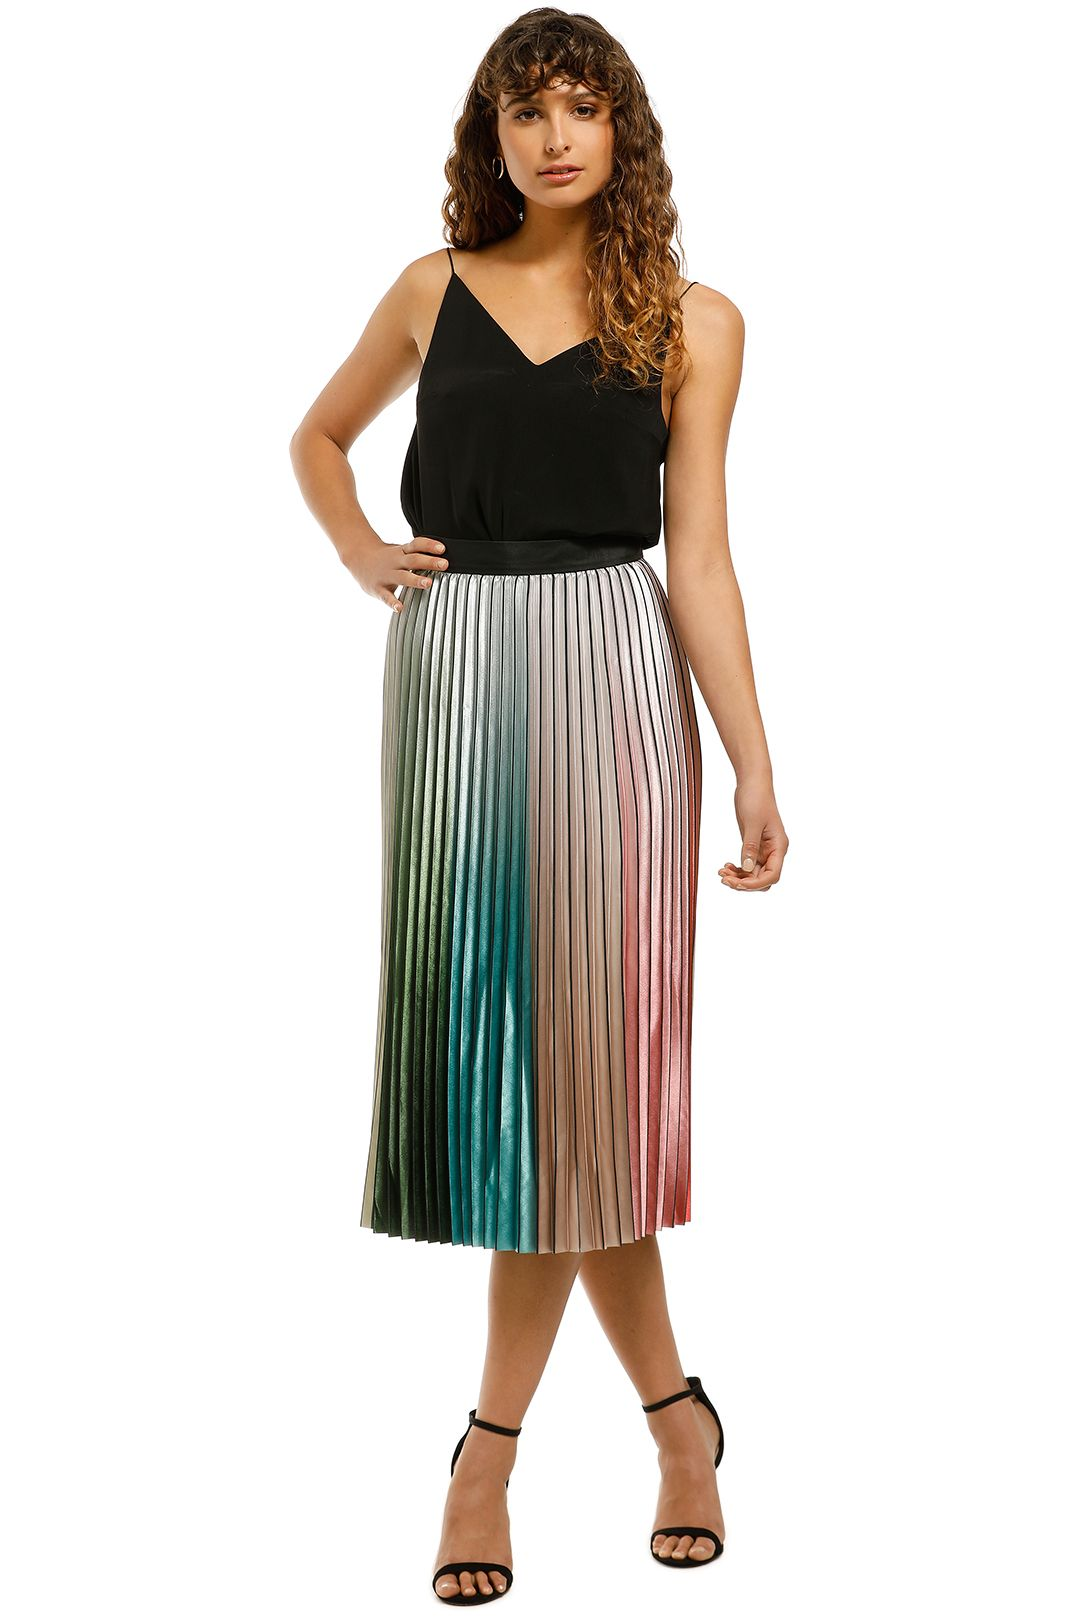 Moss-and-Spy-Ciel-Skirt-Front